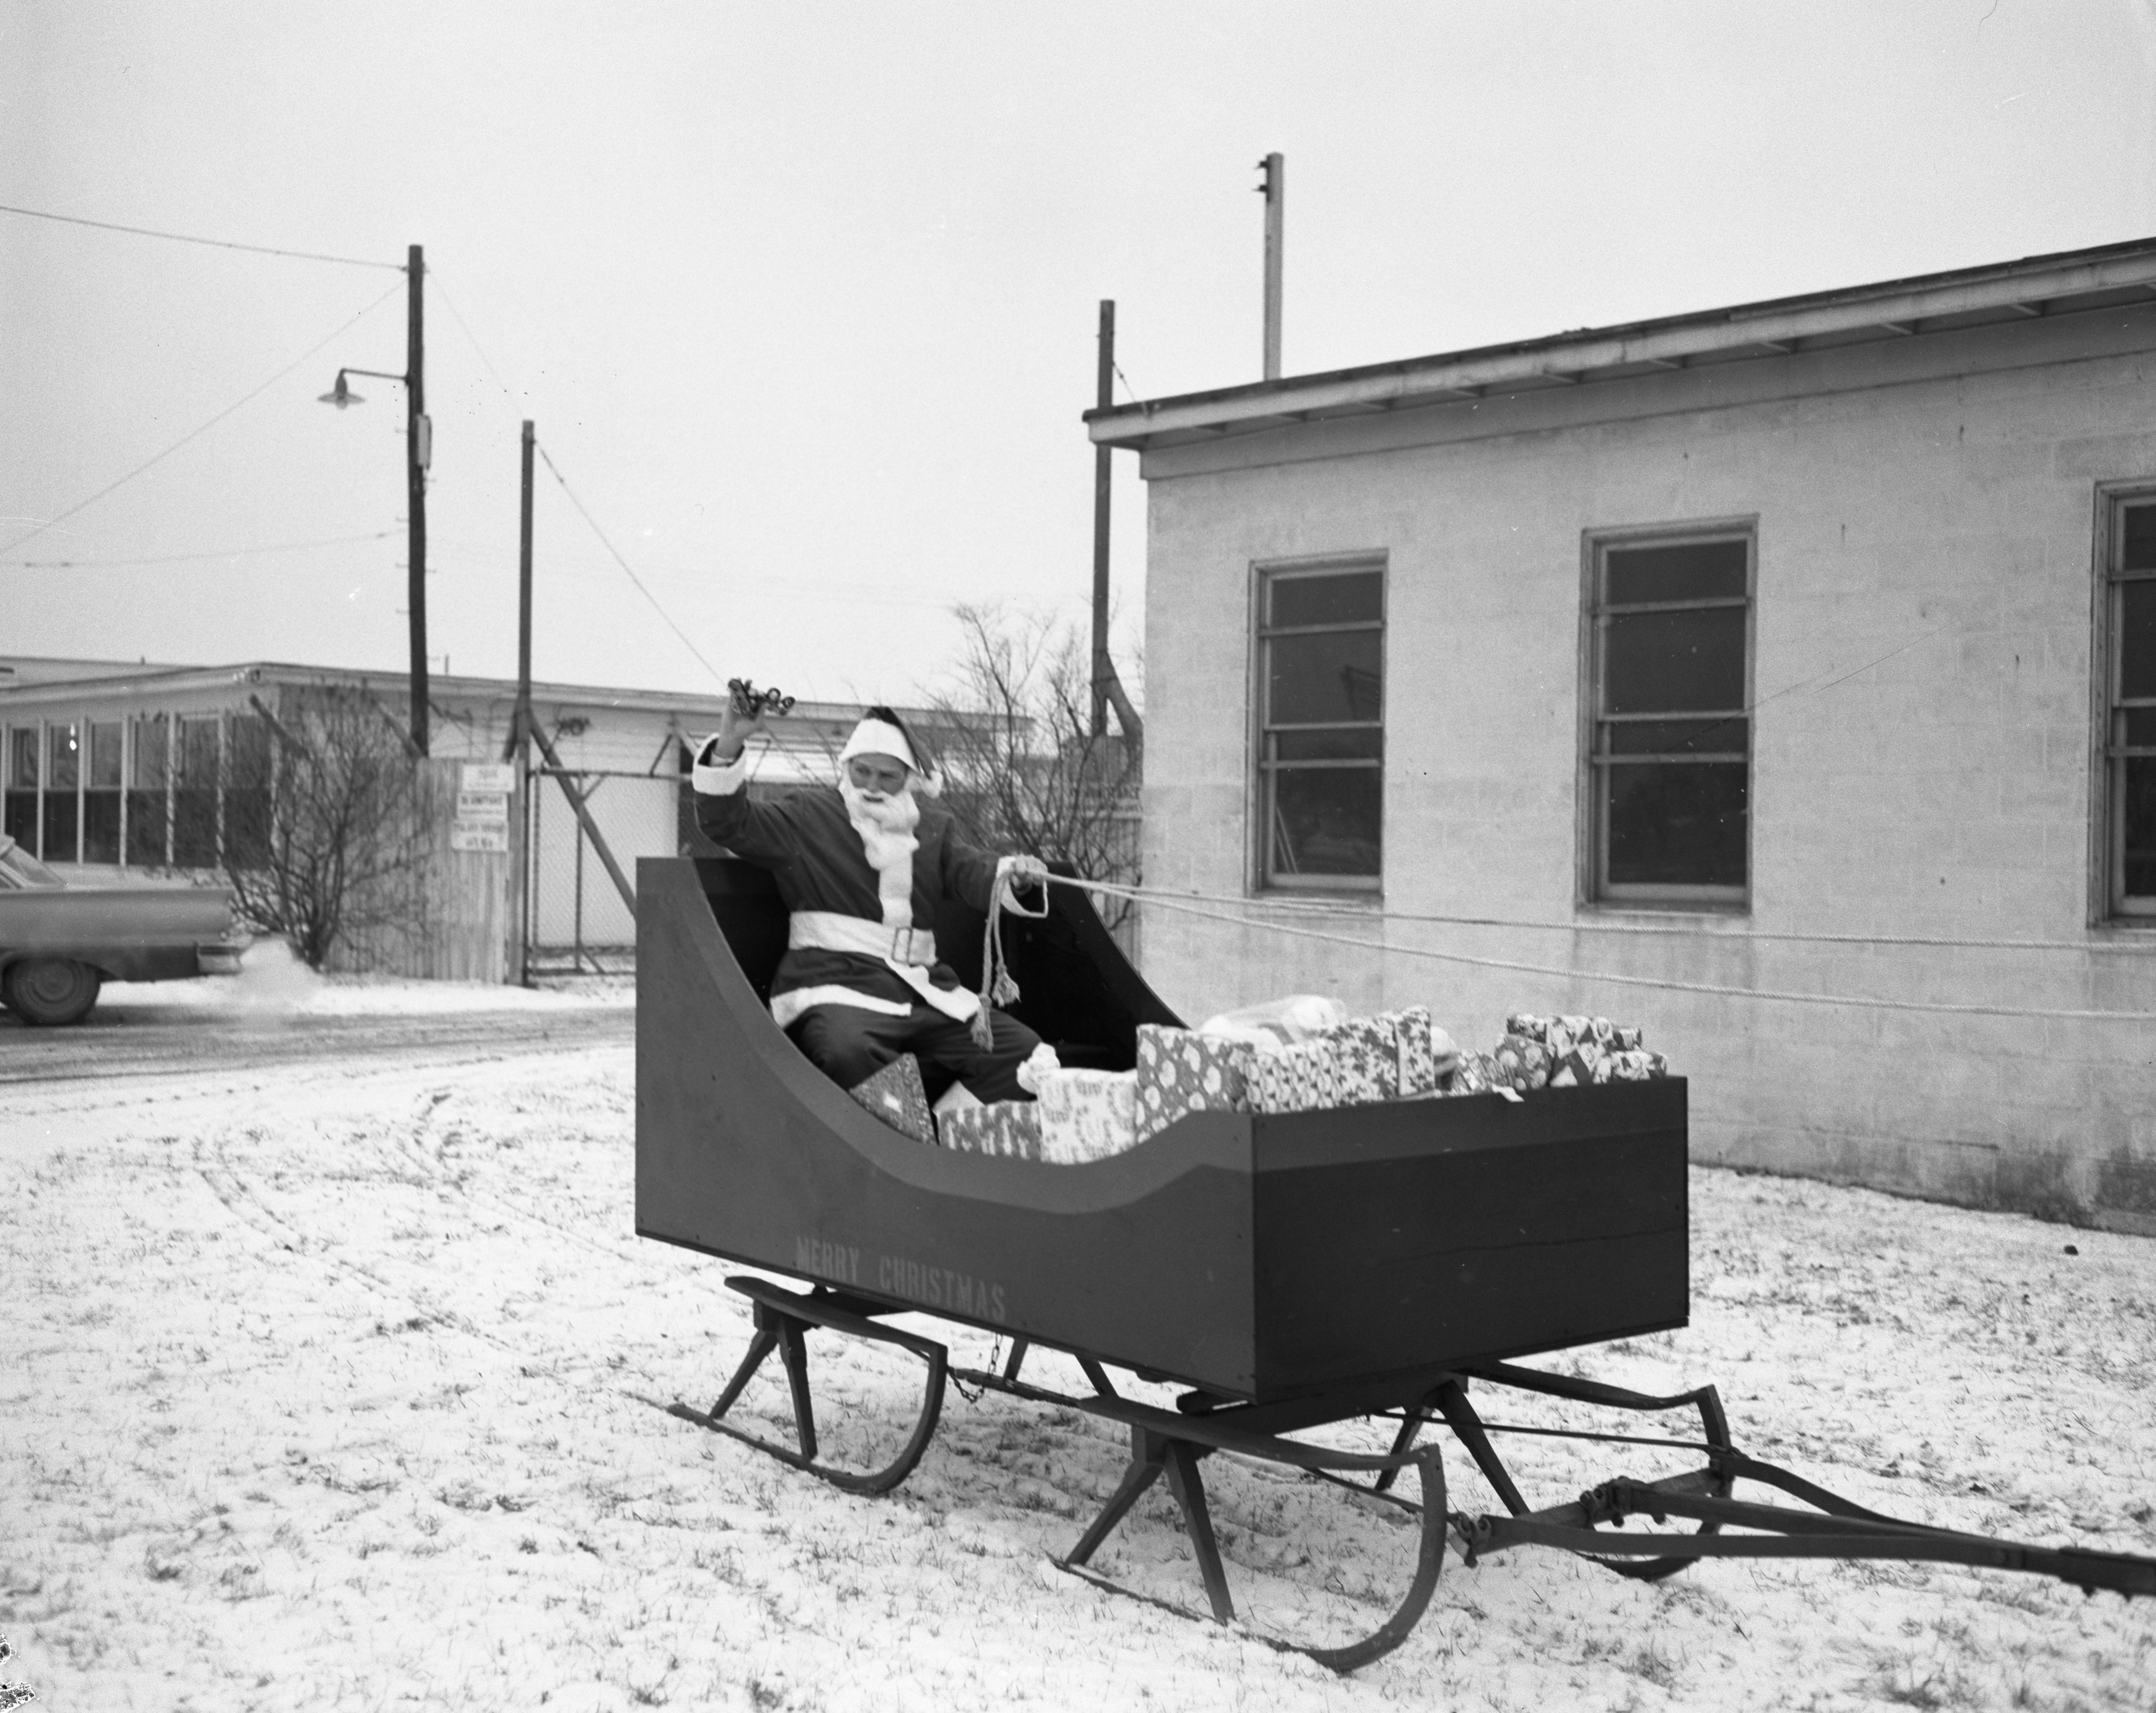 Santa in Sleigh Delivers Packages to Needy Families, December 1959 image